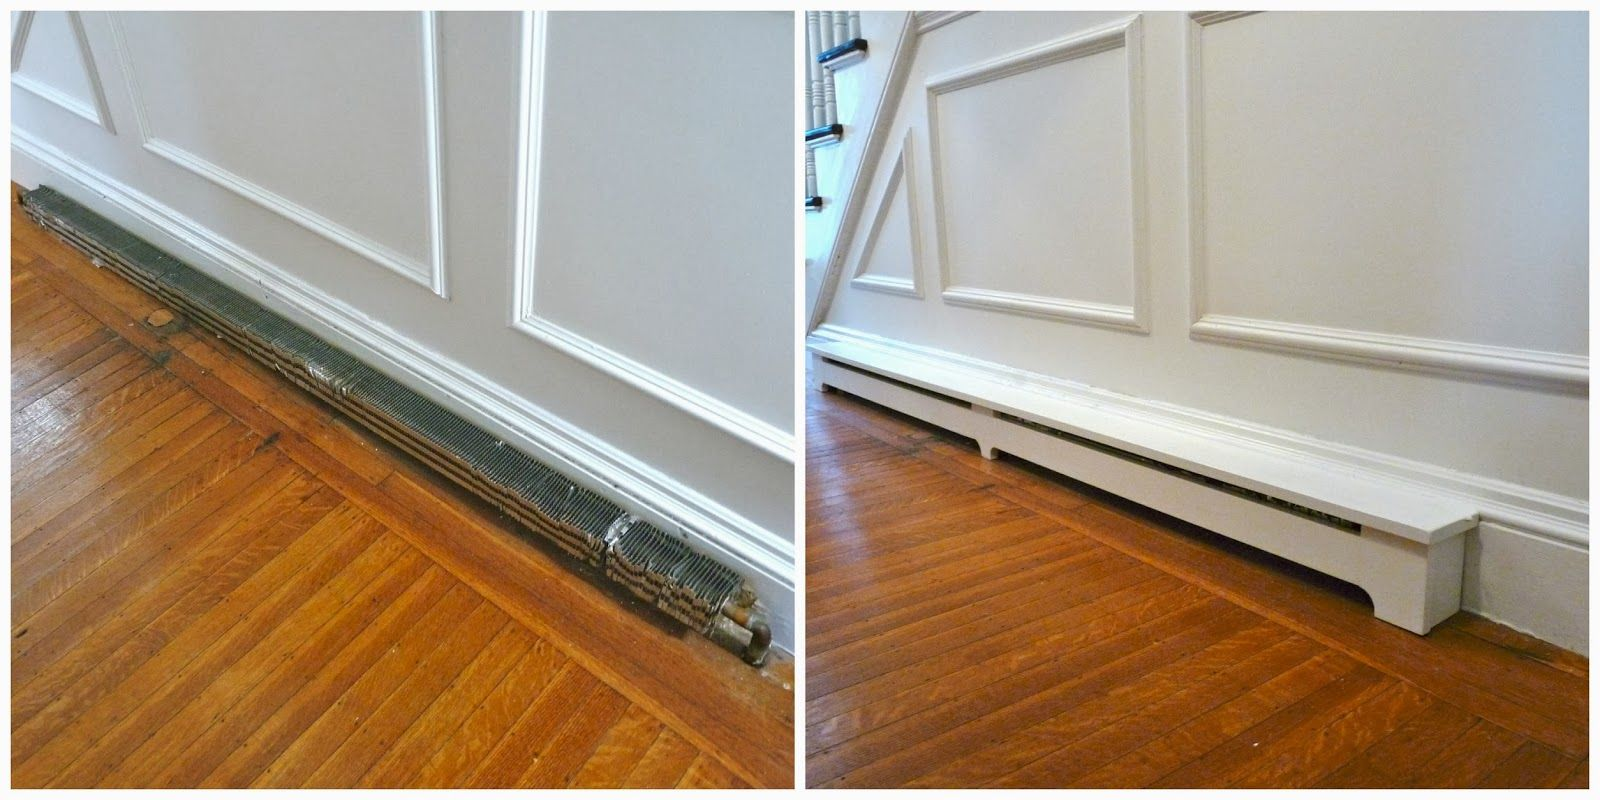 Baseboard Heat Covers By Hazardous Design Baseboard